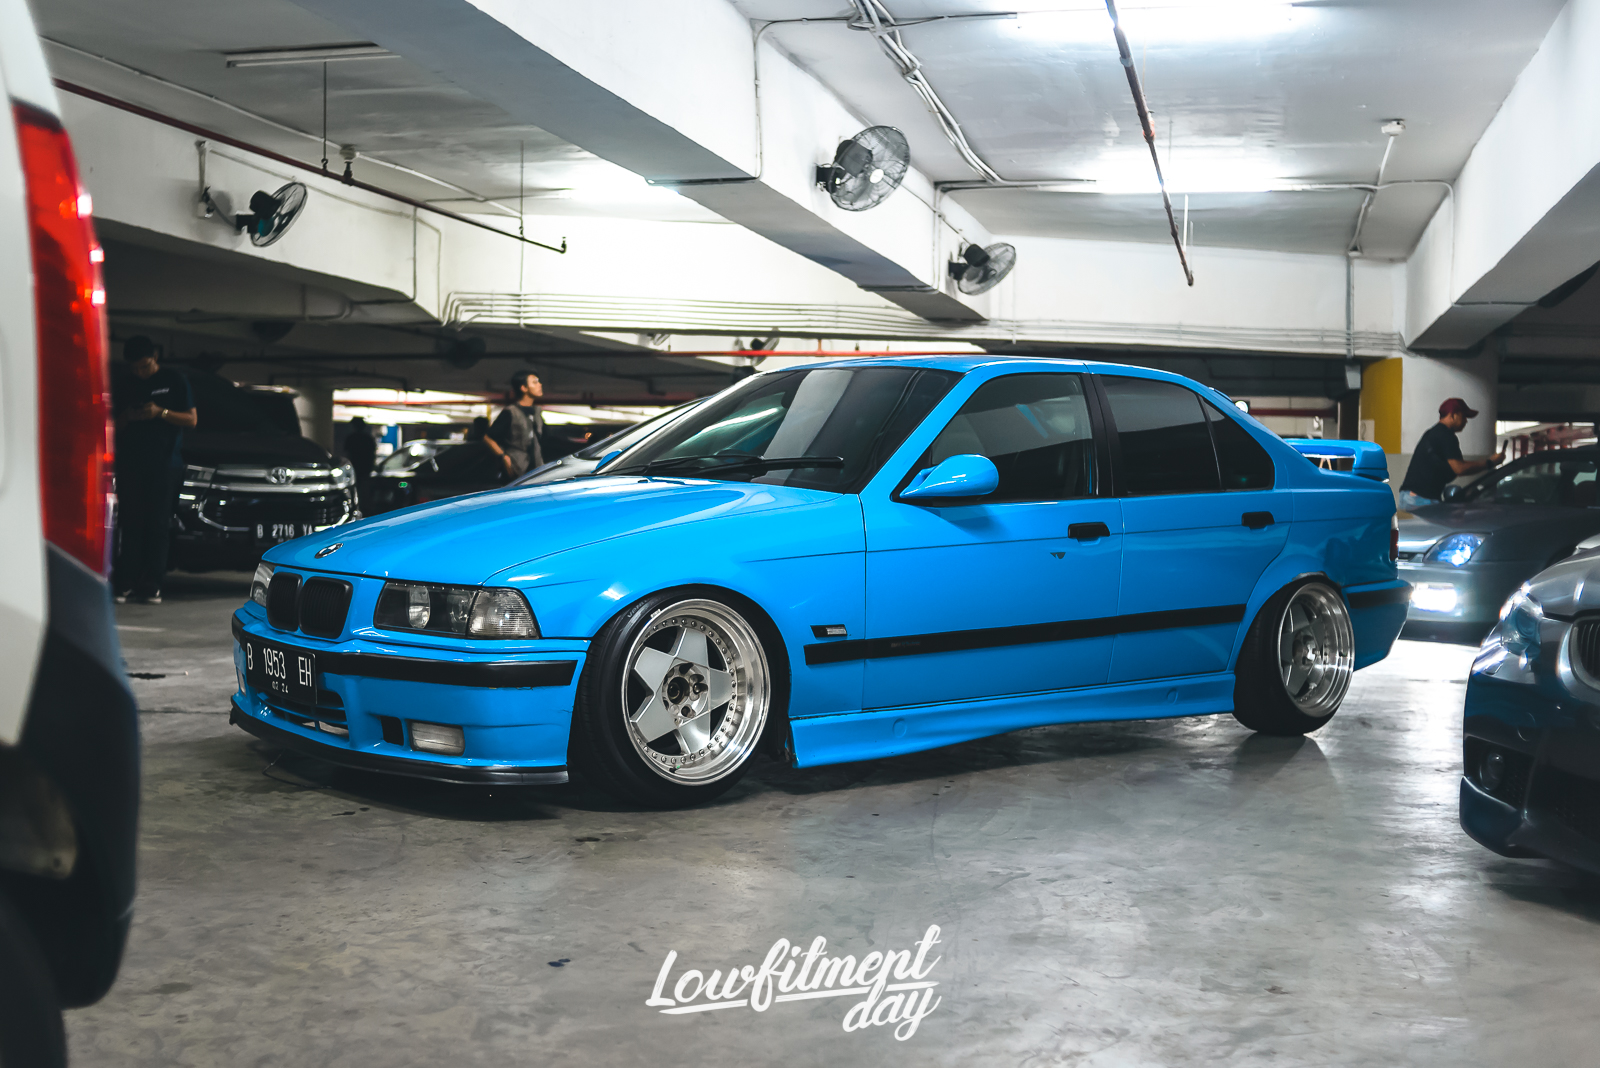 LOWFITMENT DAY 8